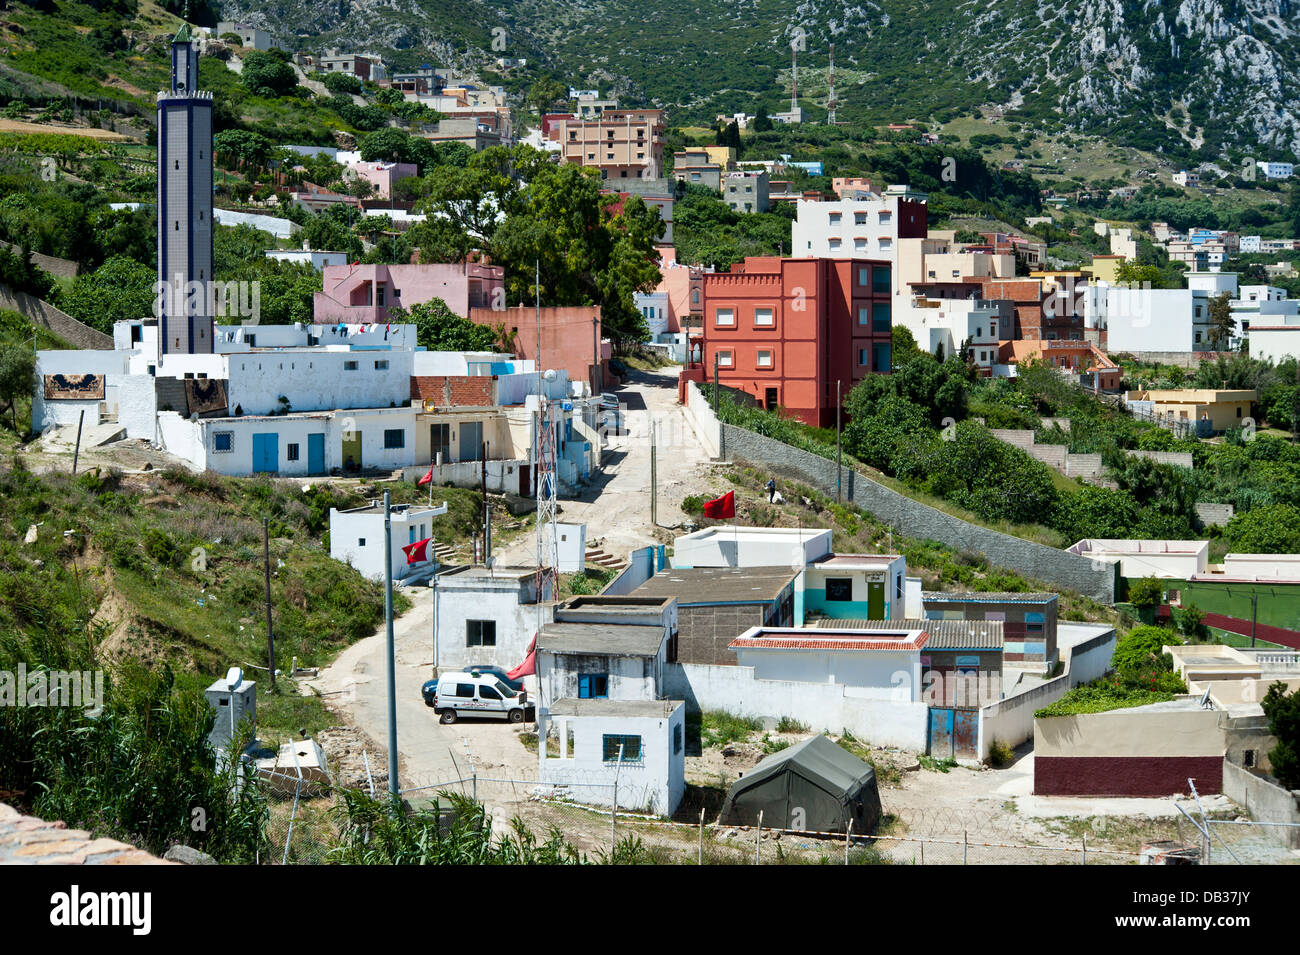 Benzu village in the border between Spain Ceuta and Morocco. Ceuta,North Africa. Spain. - Stock Image